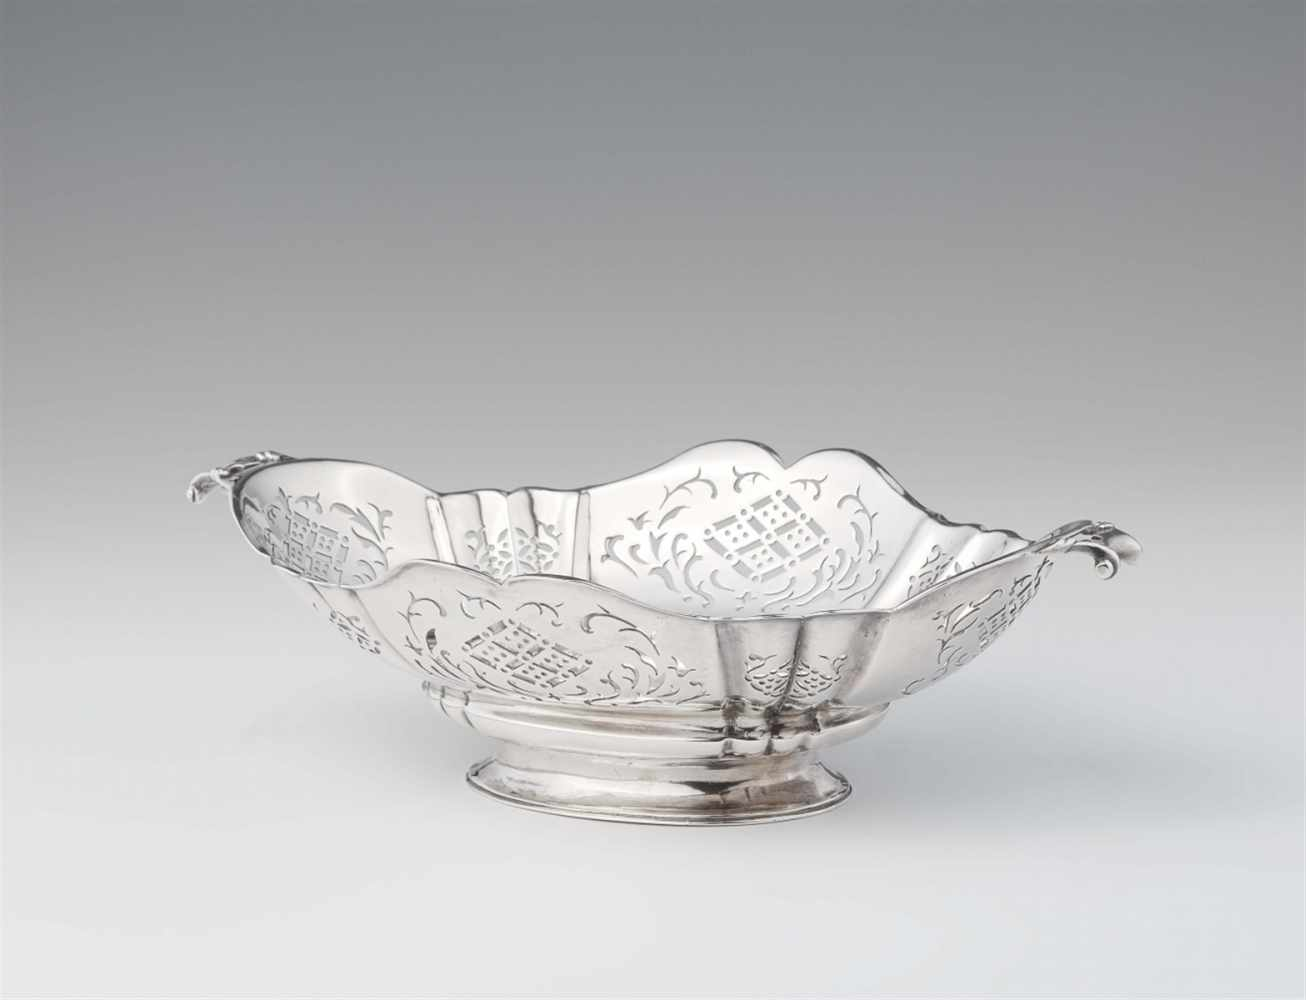 Lot 325 - An Augsburg Baroque silver stembowlOval scalopped dish with handles. Decorated with pierced